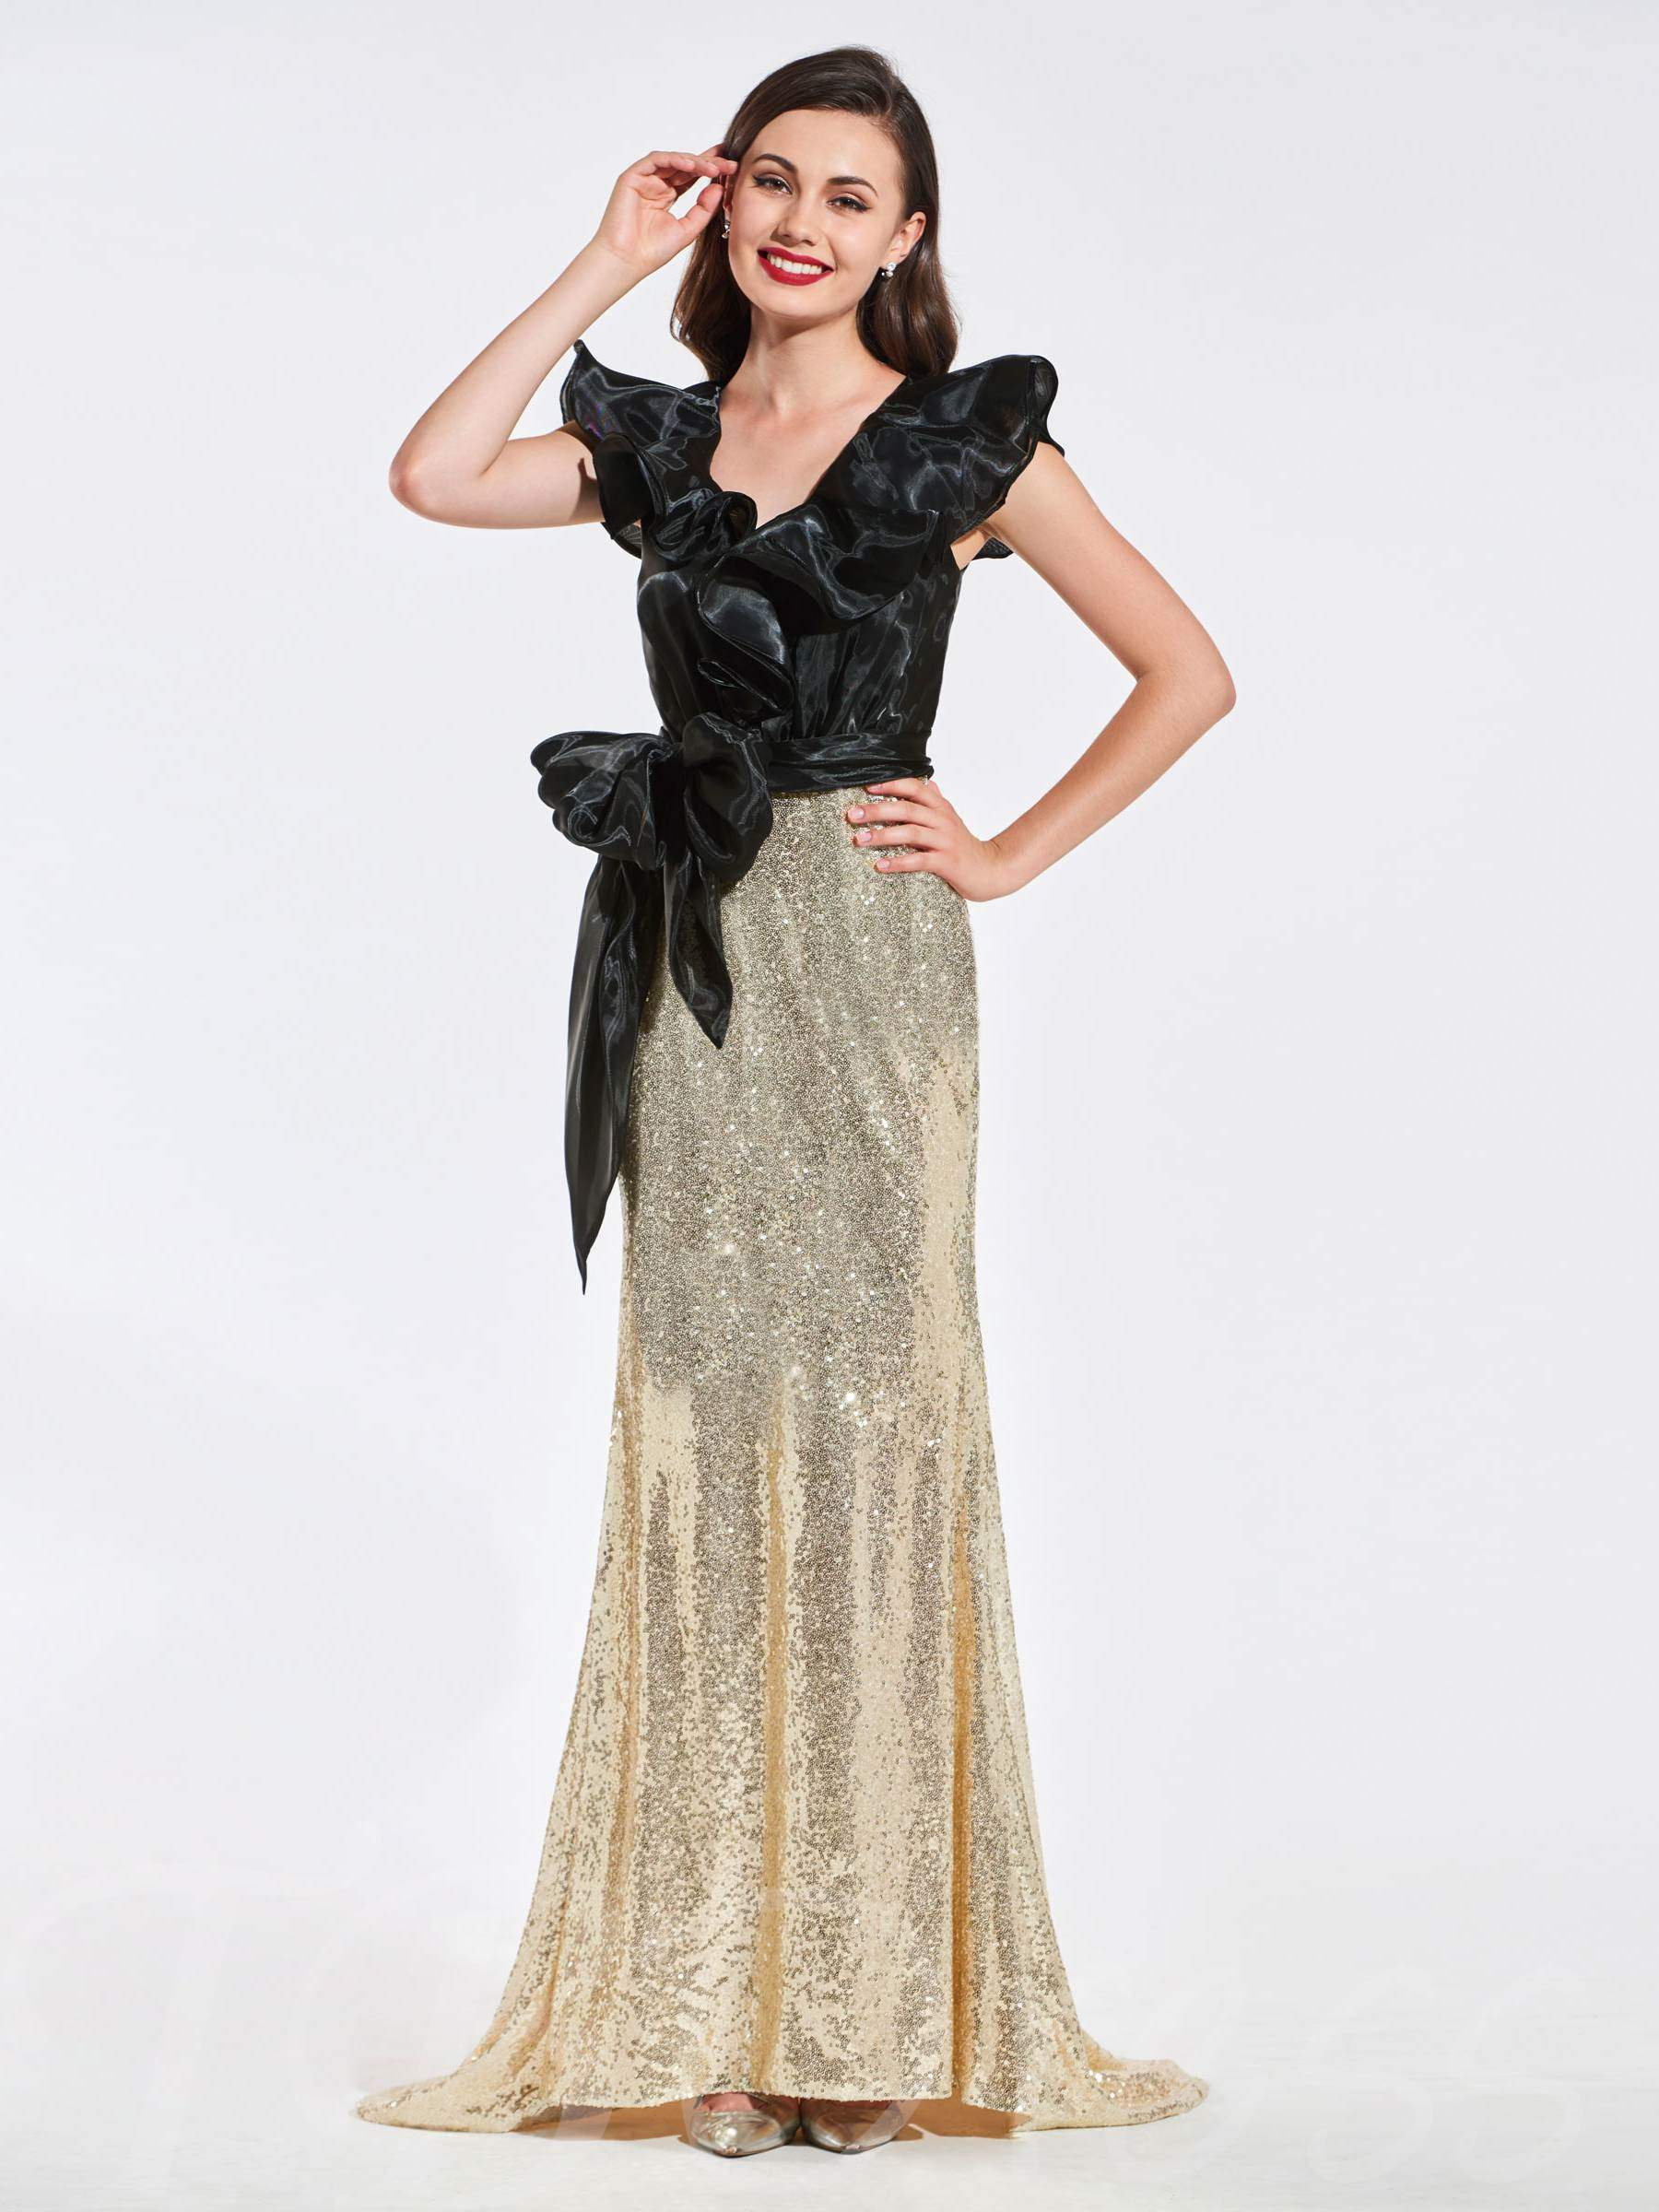 Buy V-Neck Trumpet Bowknot Sequins Evening Dress, Spring,Summer,Fall,Winter, 13384081 for $145.99 in TBDress store